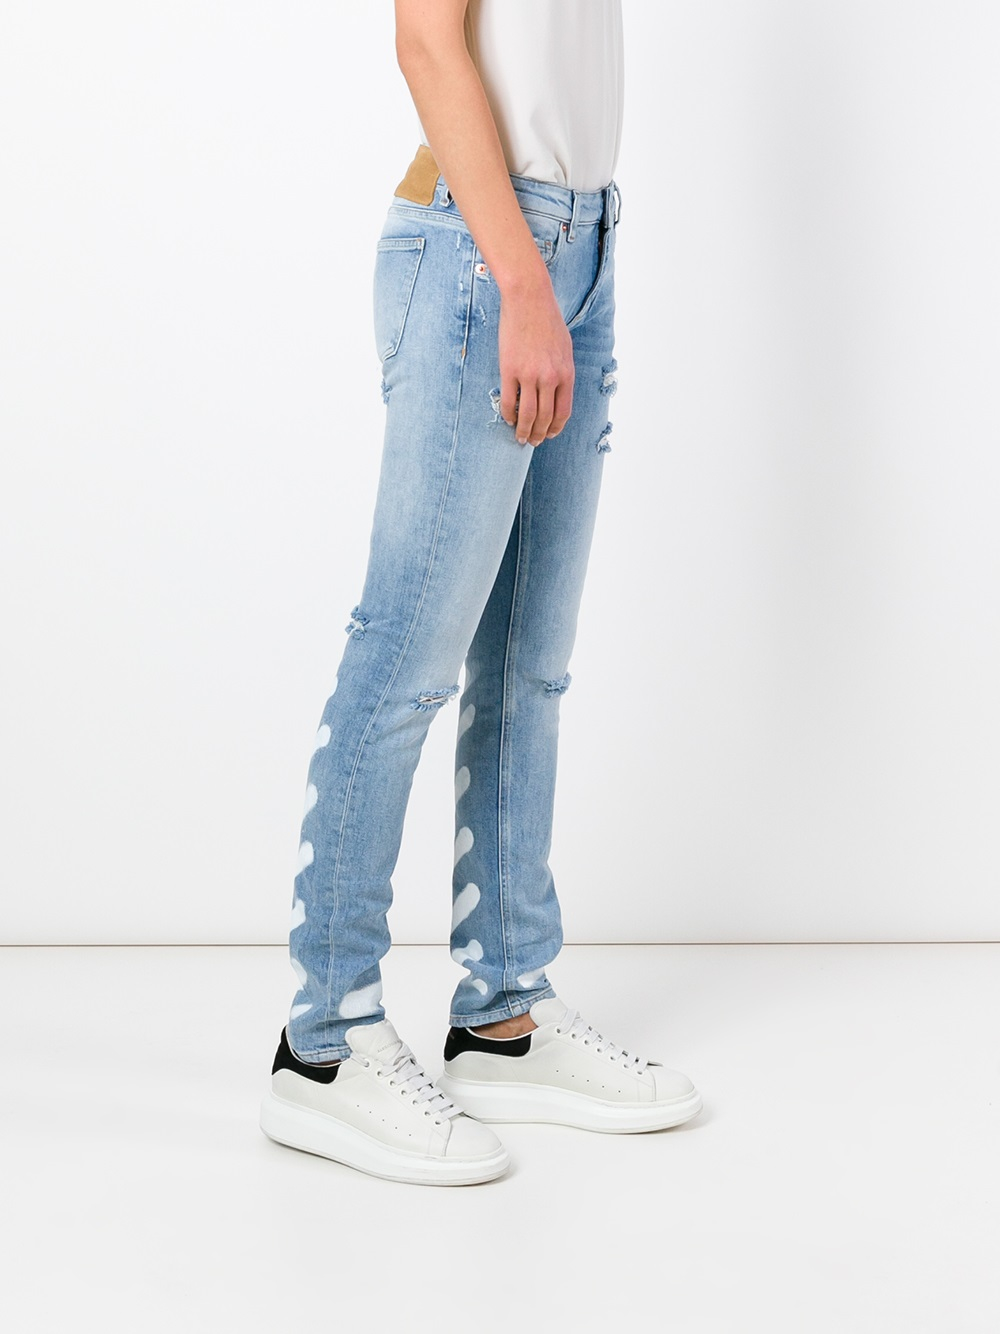 Off-white c/o virgil abloh Skinny Jeans in Blue | Lyst